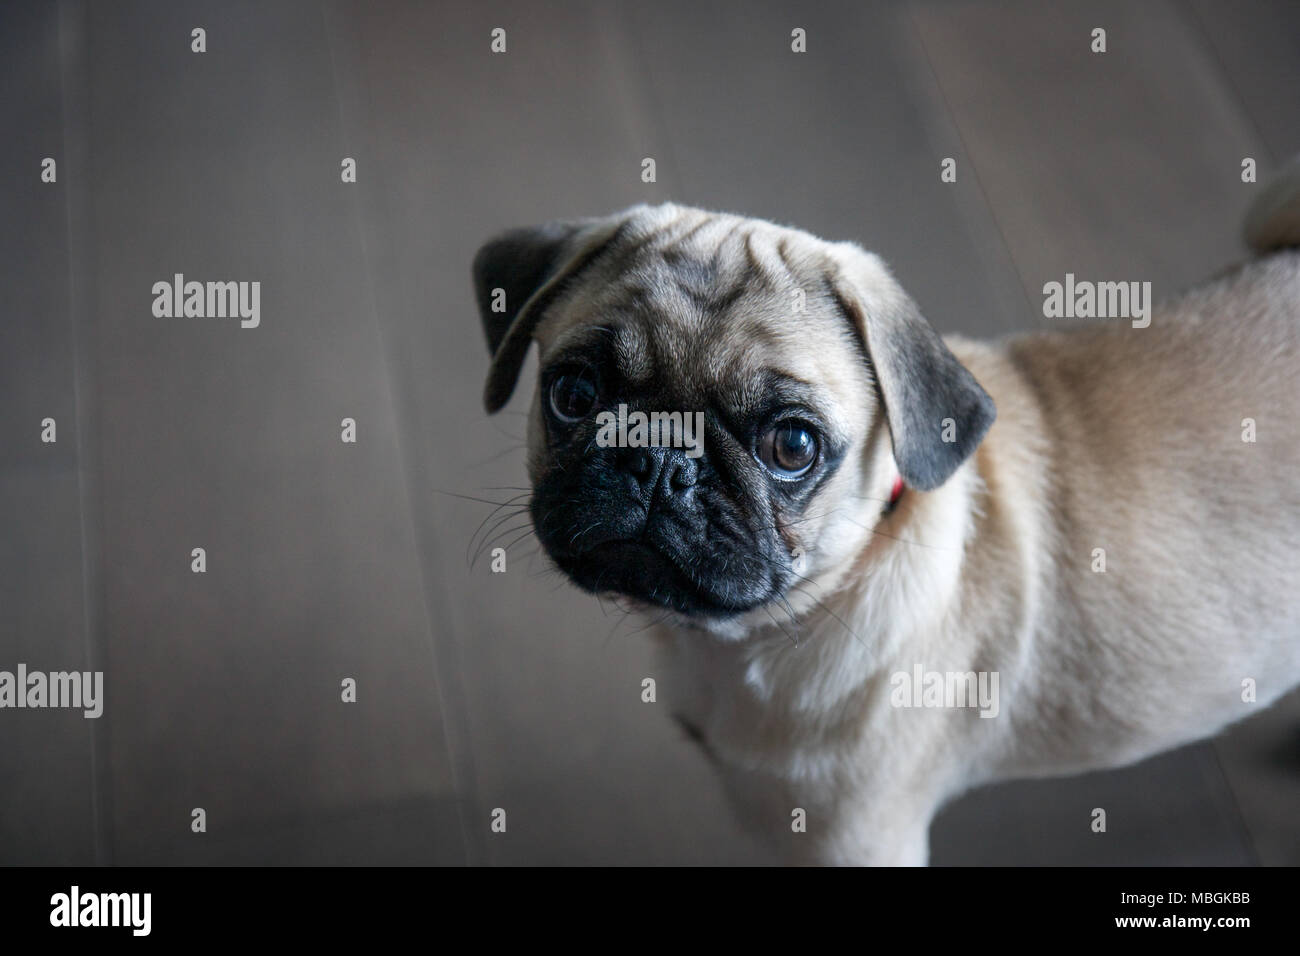 Adorable Pug Puppy Looking Upwards - Stock Image